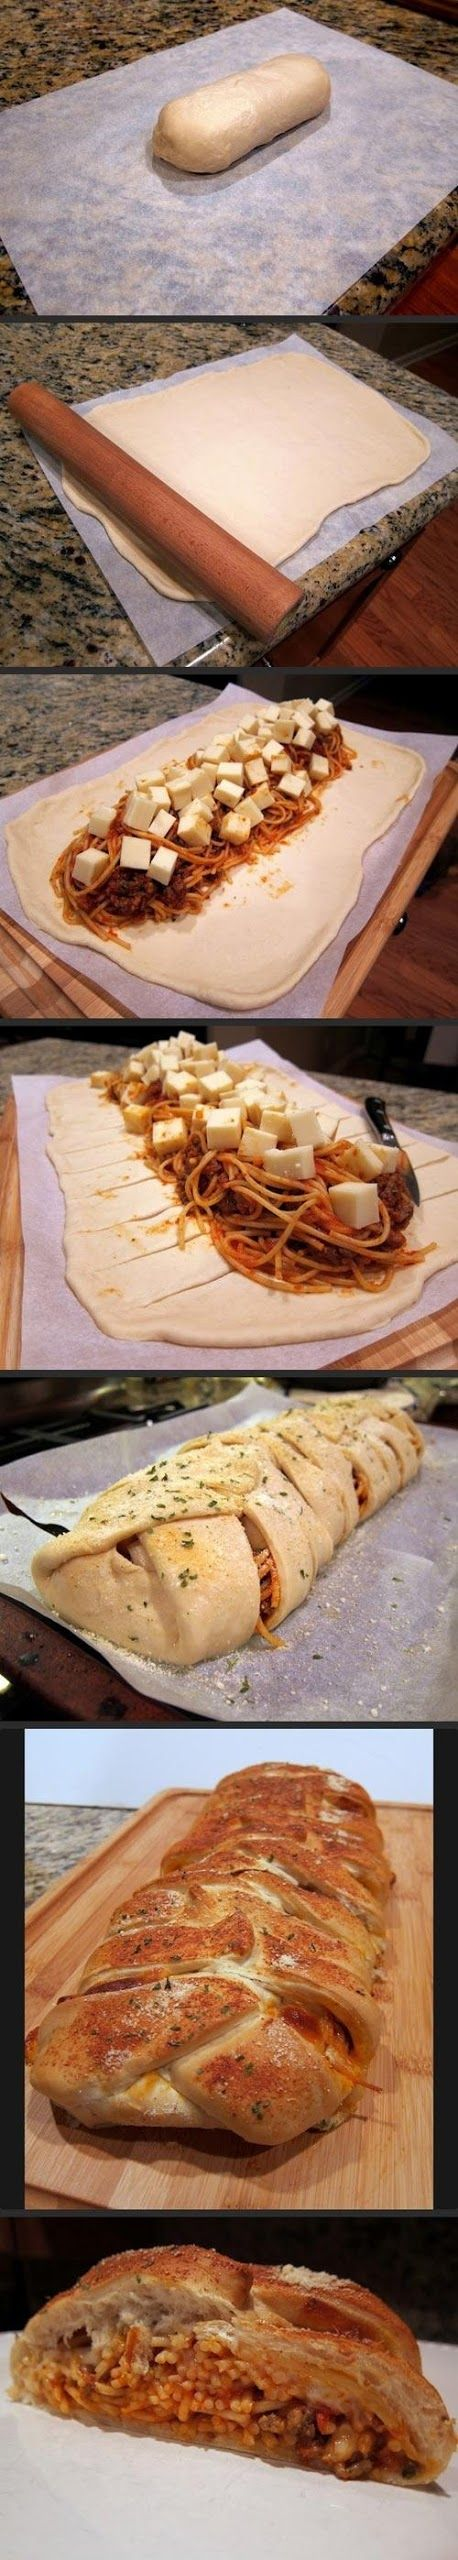 Spaghetti bread I made this it is DELICIOUS my boys request it a lot!!!